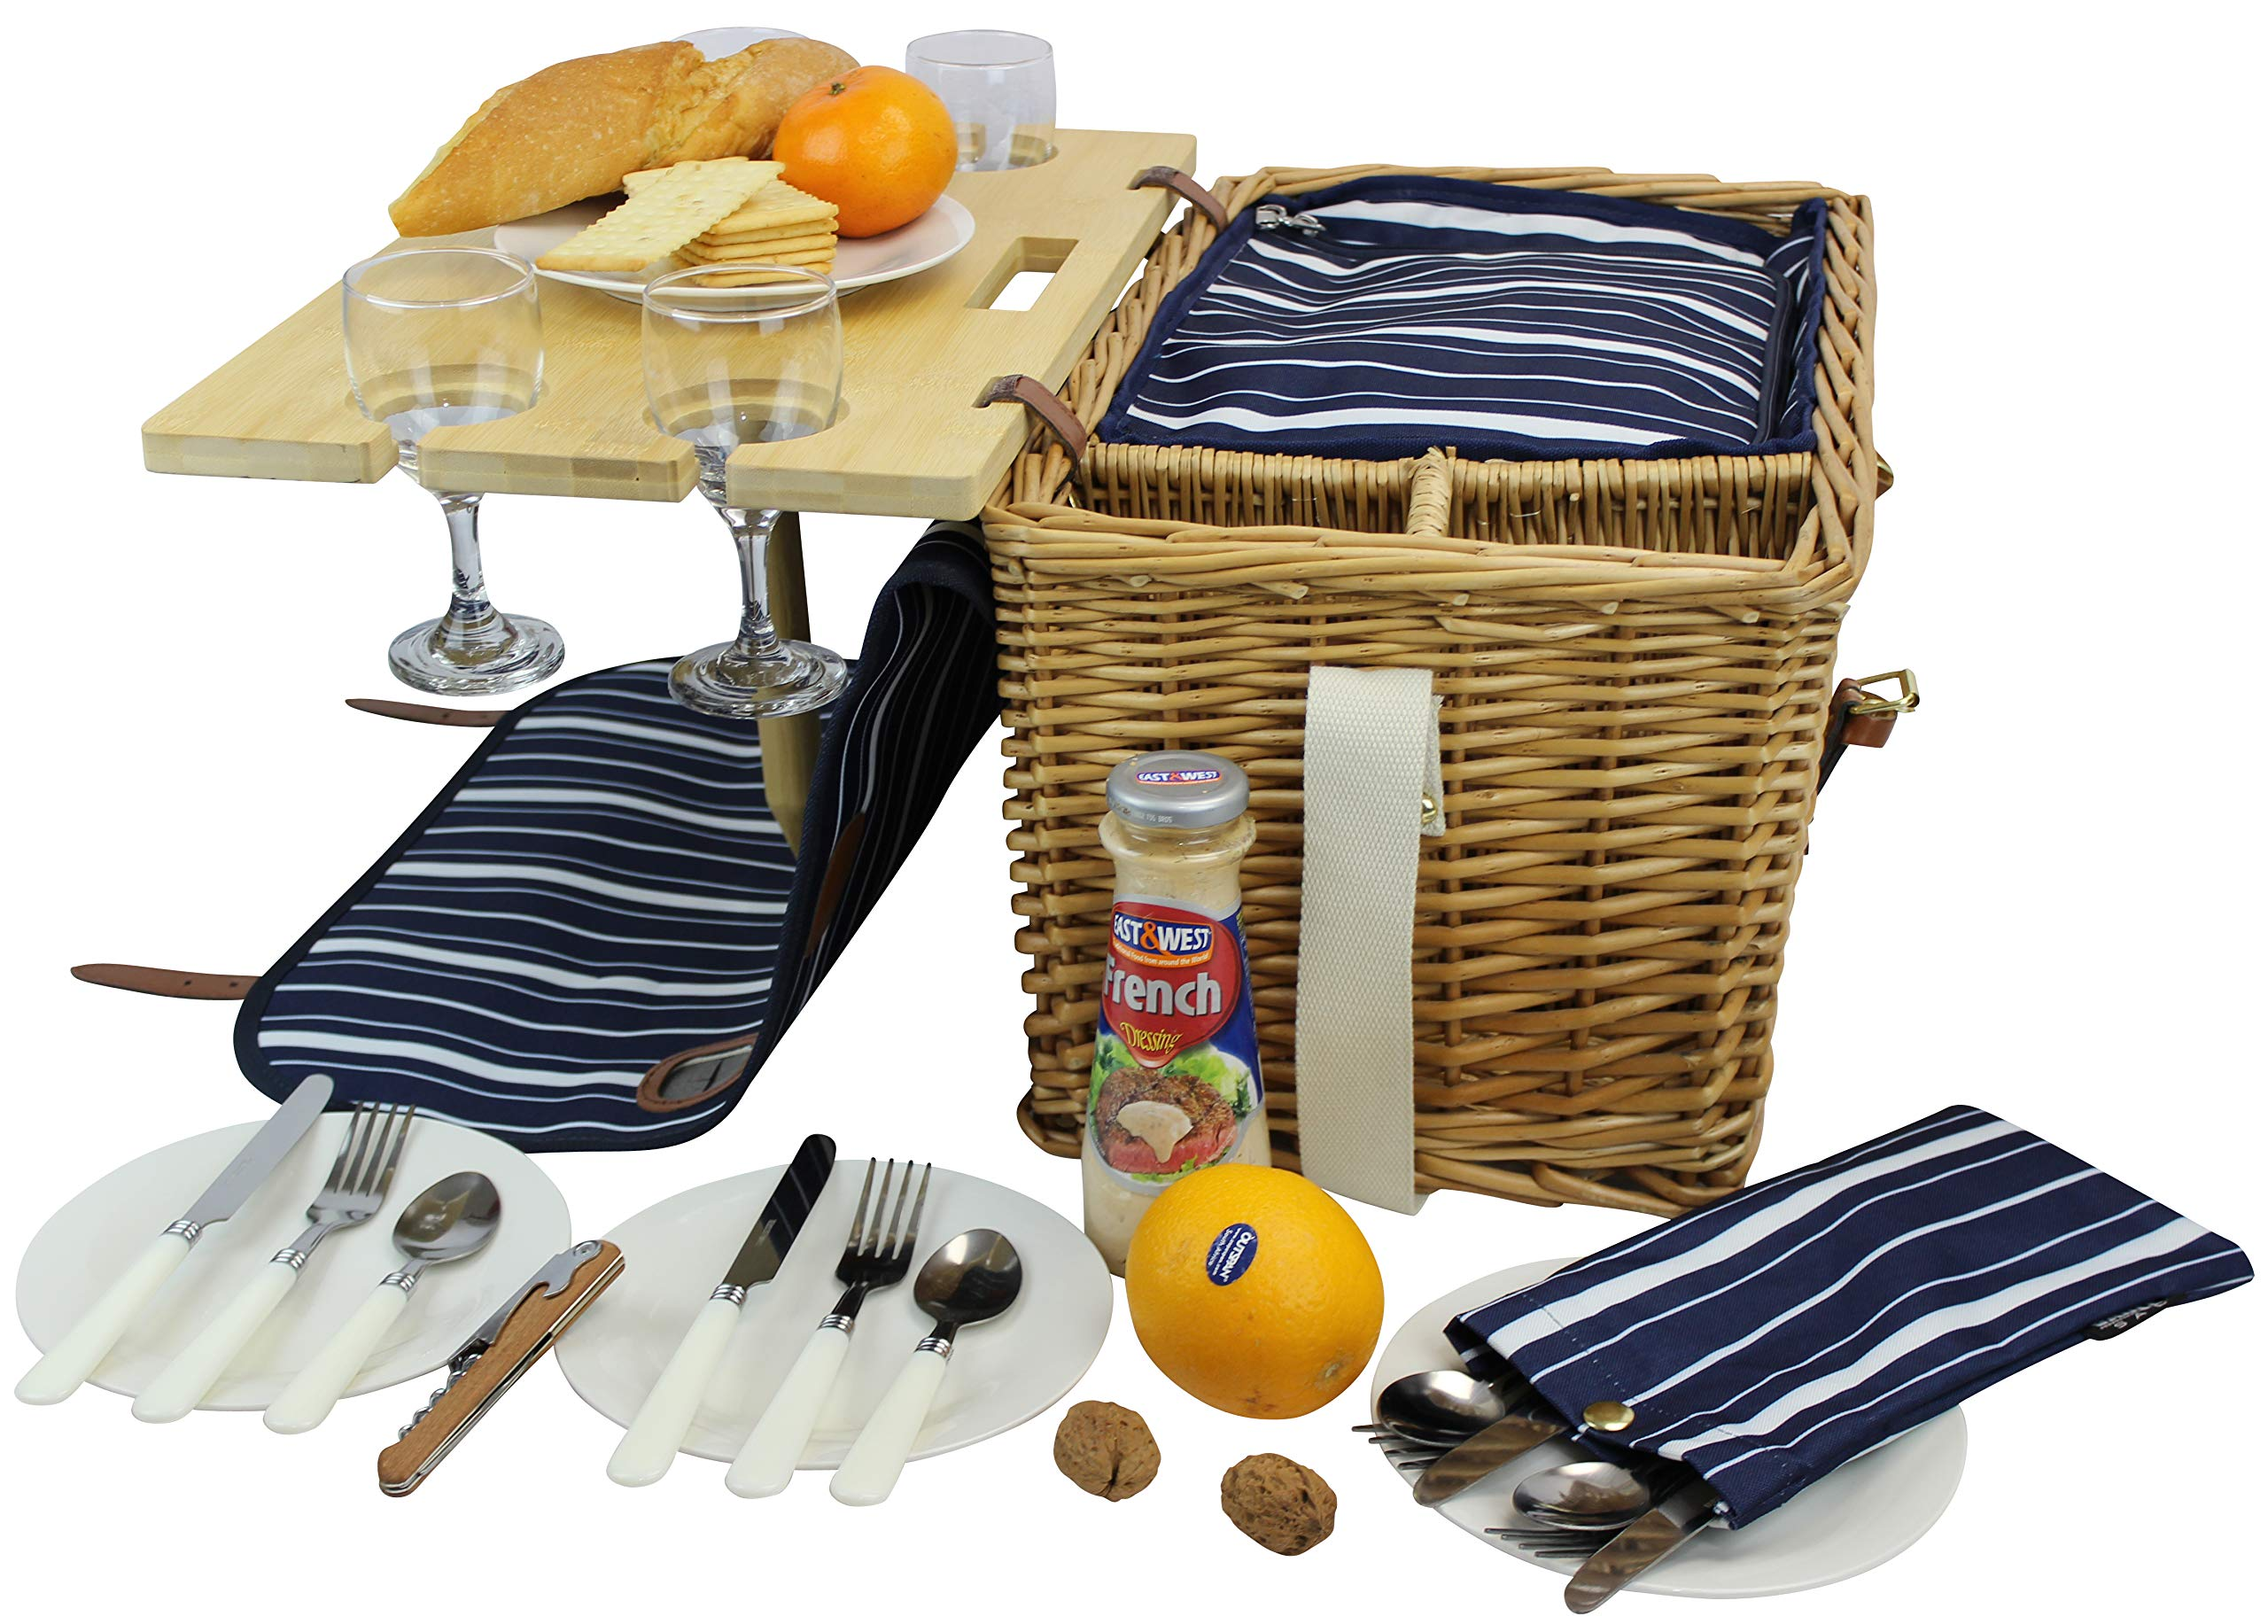 Picnic Basket for 4 Removable Bamboo Table Cotton Canvas Top Cover [4 Person Set] INSULATED Cooler Waterproof Picnic Blanket, Ceramic Plates, Metal Flatware, Wine Glasses Wooden Bottle Opener